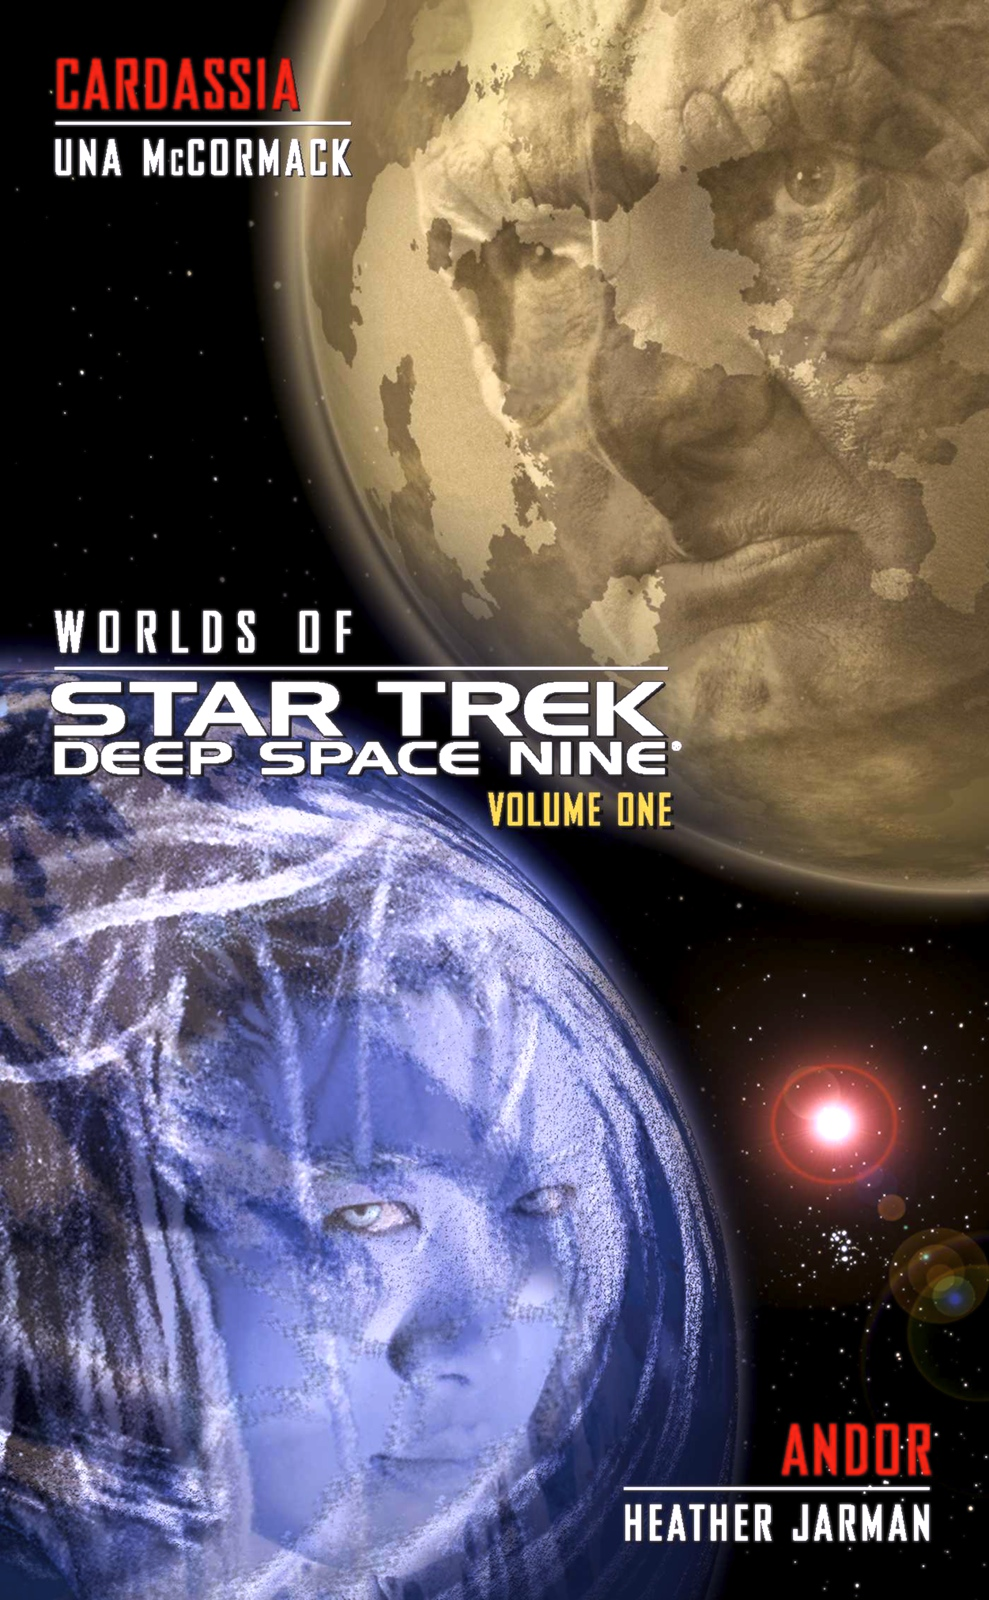 worlds of deep space nine 3 dec andido keith r a george iii david r